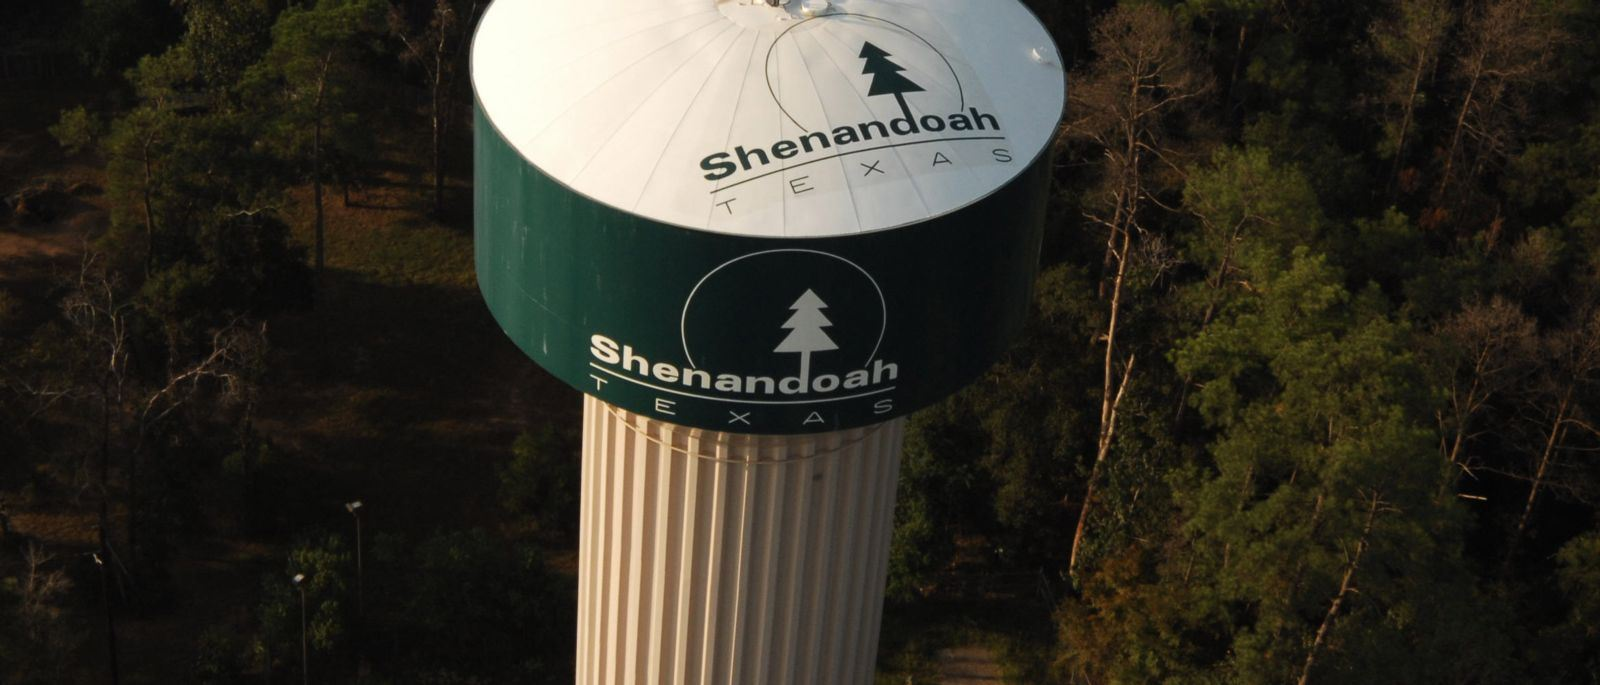 Shenandoah Water Tower